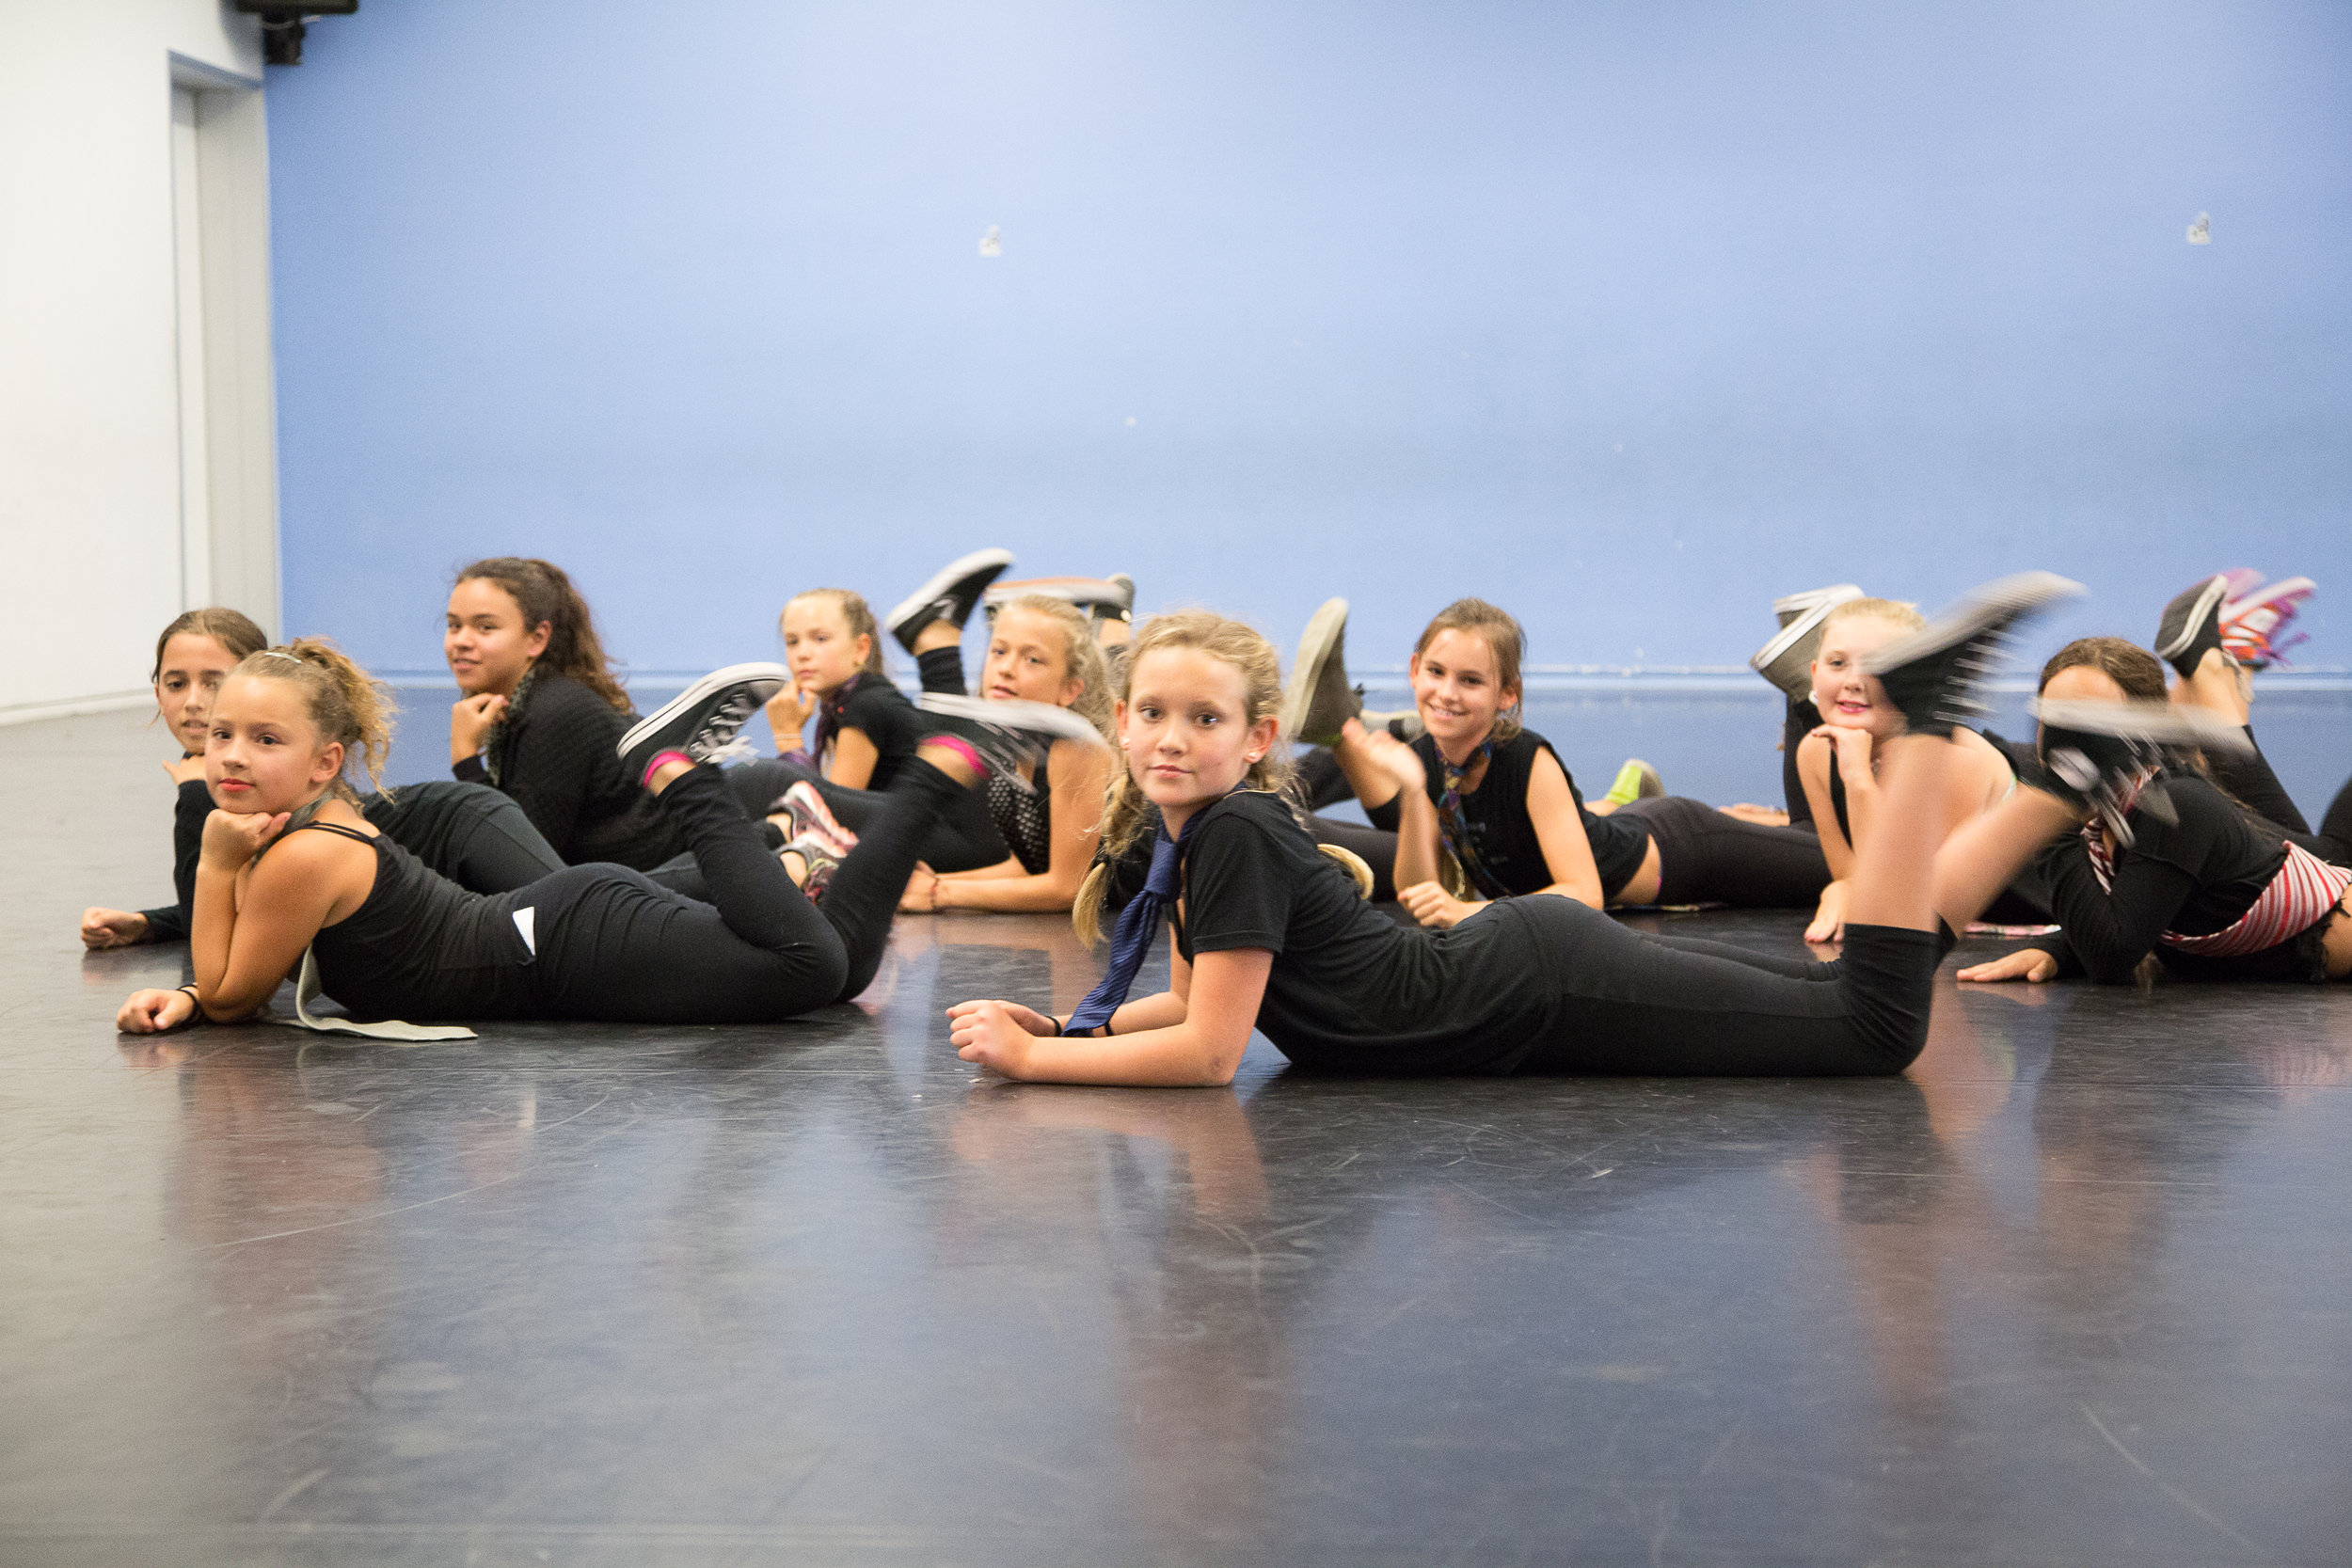 Beginning Classes - Our beginning classes are aged based and have a range of 3-4 years in each level.Youth/Level 1: Children ages 5-9 who are ready for structure and expanding their dance skills.Tween Levels: Tween dancers ages 8-12 just getting started with dance, but want to be with peers.Teen Levels: Teen dancers ages 13-17 newer to dance and looking to dance with their peers. We are very strict with our teen age requirements - especially for hip hop.